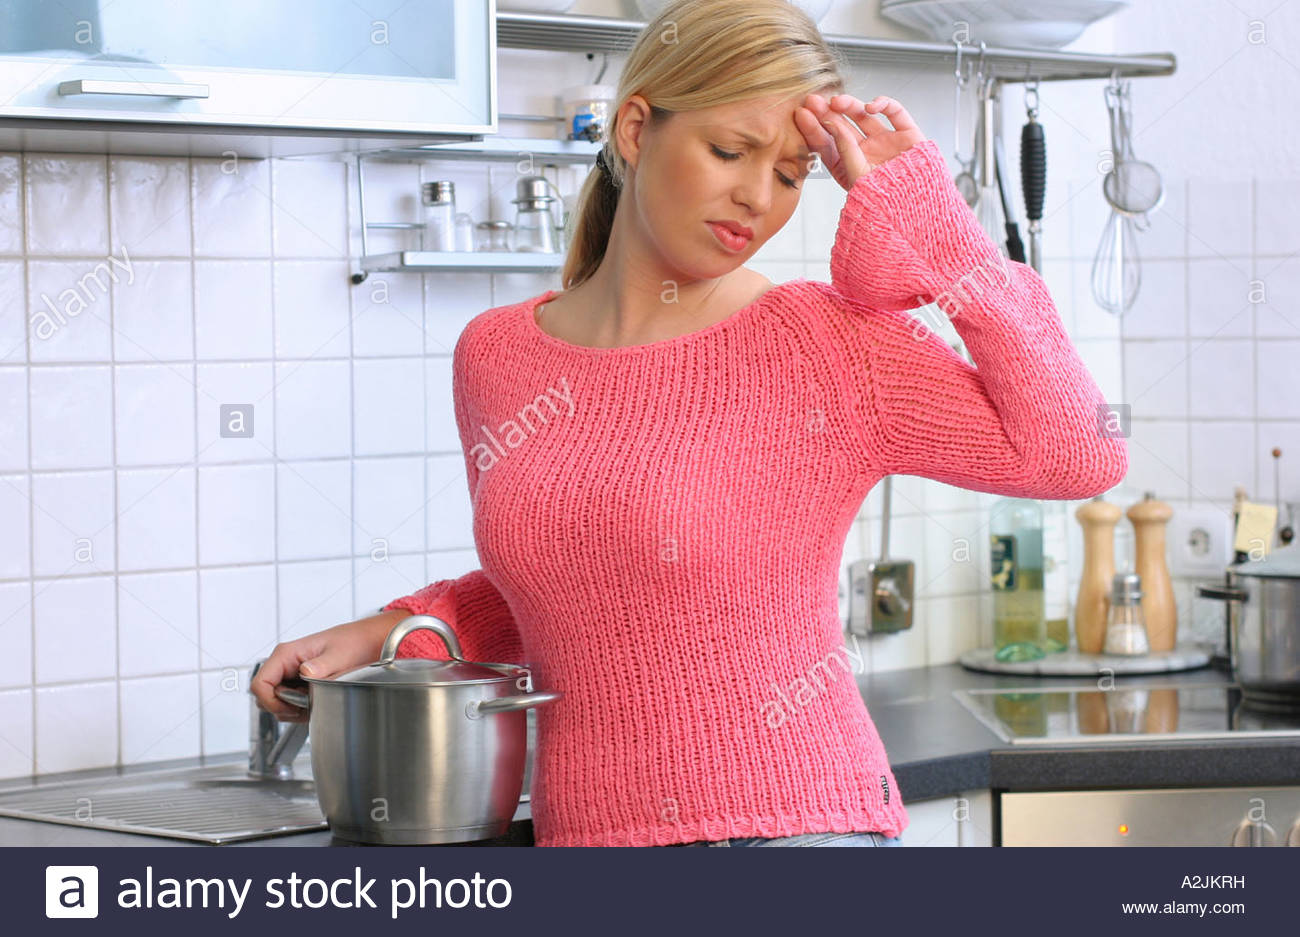 woman works in kitchen Stock Photo